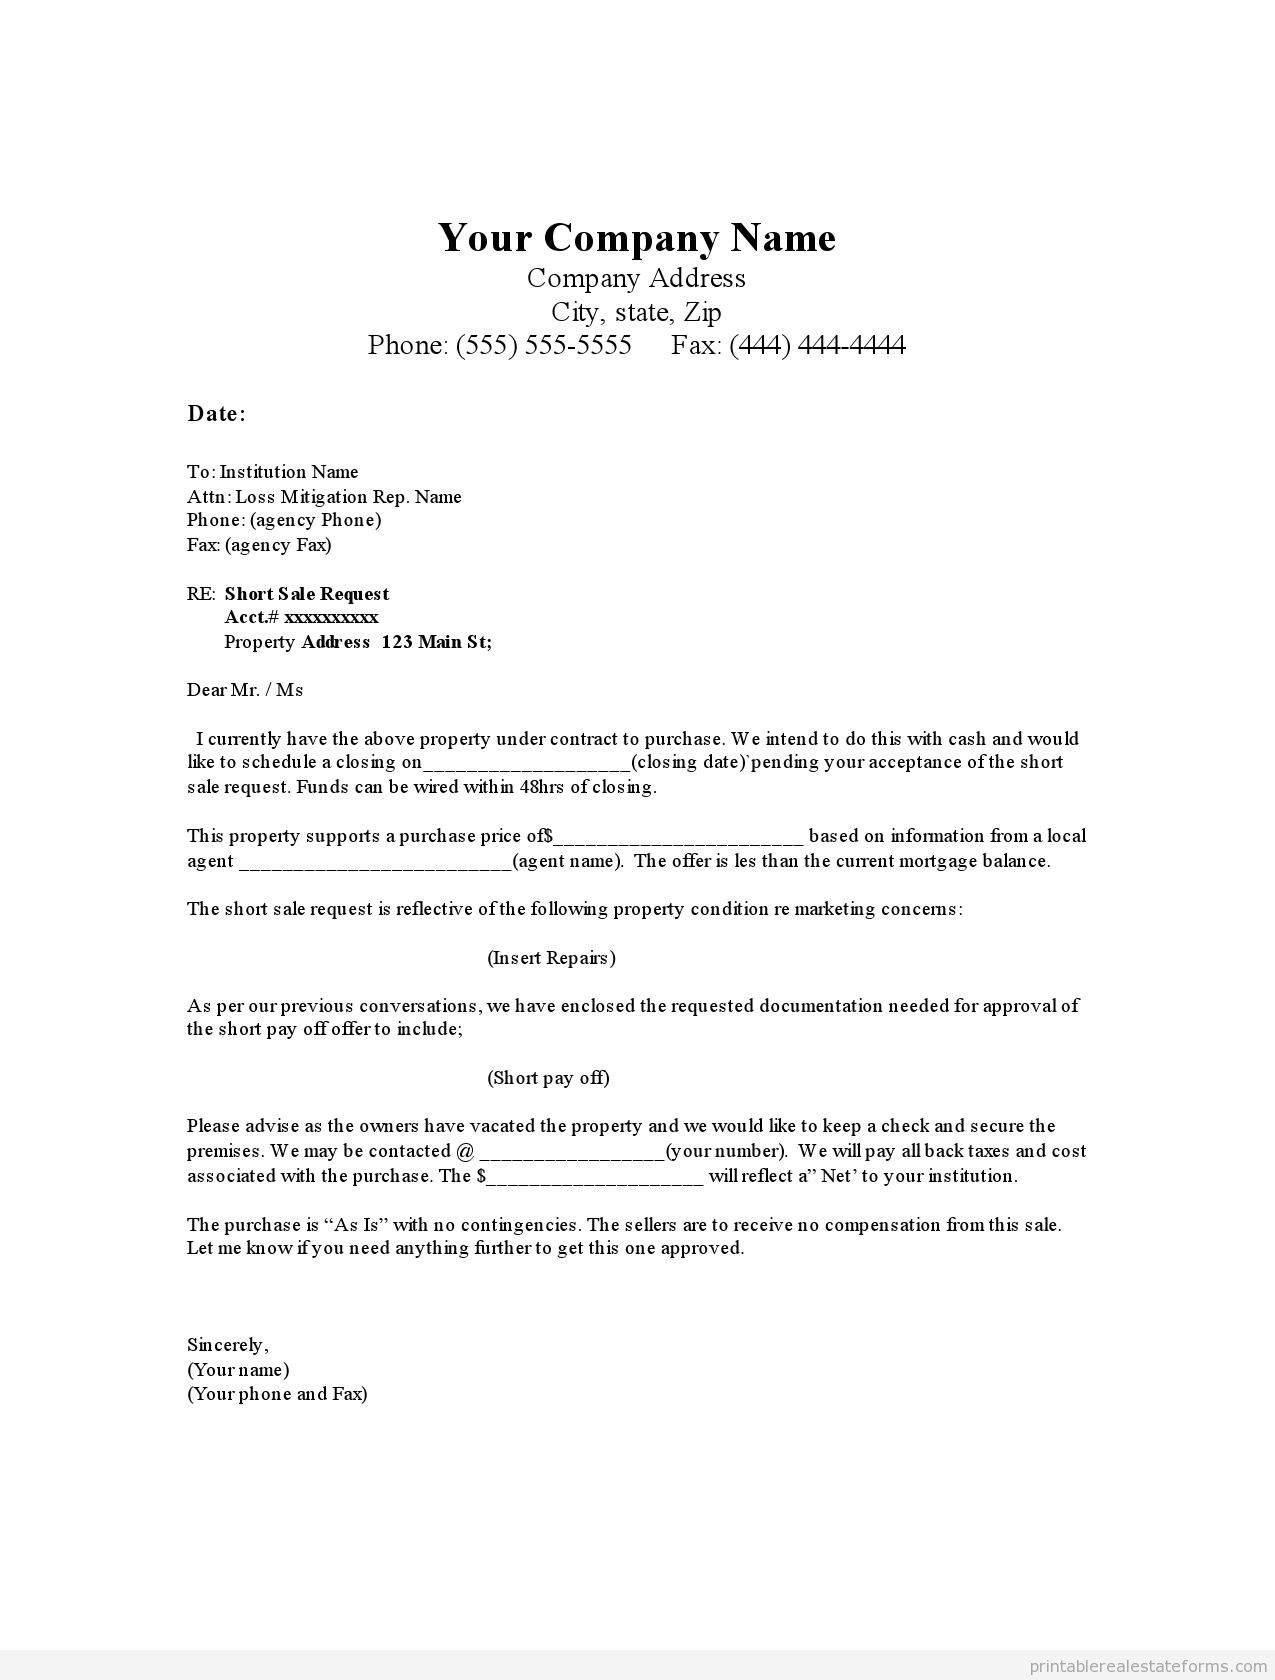 Real Estate Offer Letter Template - Home Fer Letter Template Home Fer Letter Sample Ideas